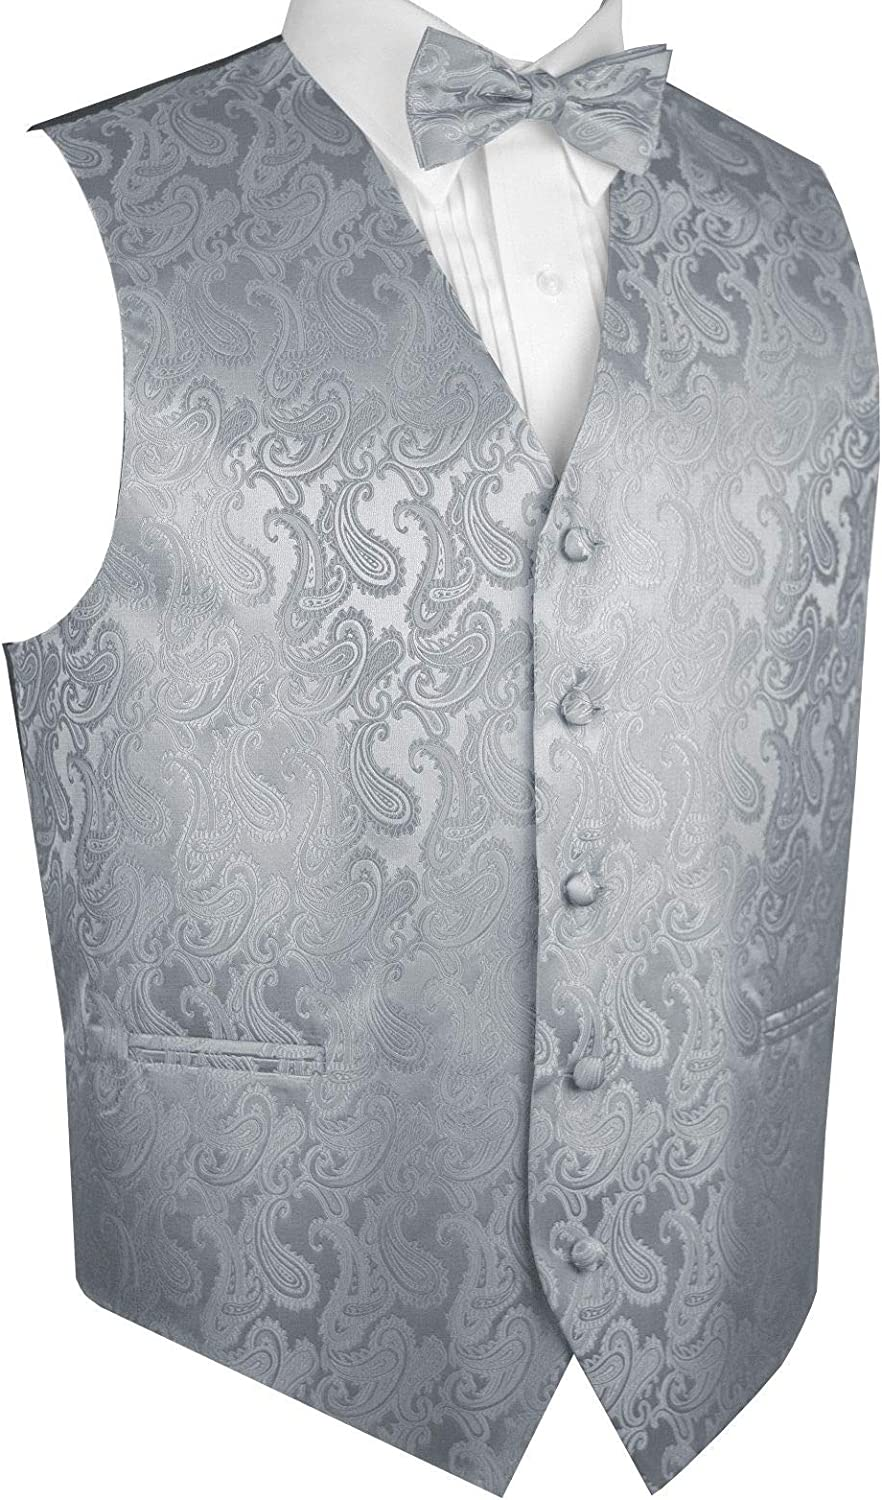 Men/'s Paisley Peach Polyester Tuxedo Vest with Self Tie 2.5 Necktie for Formal Occasions